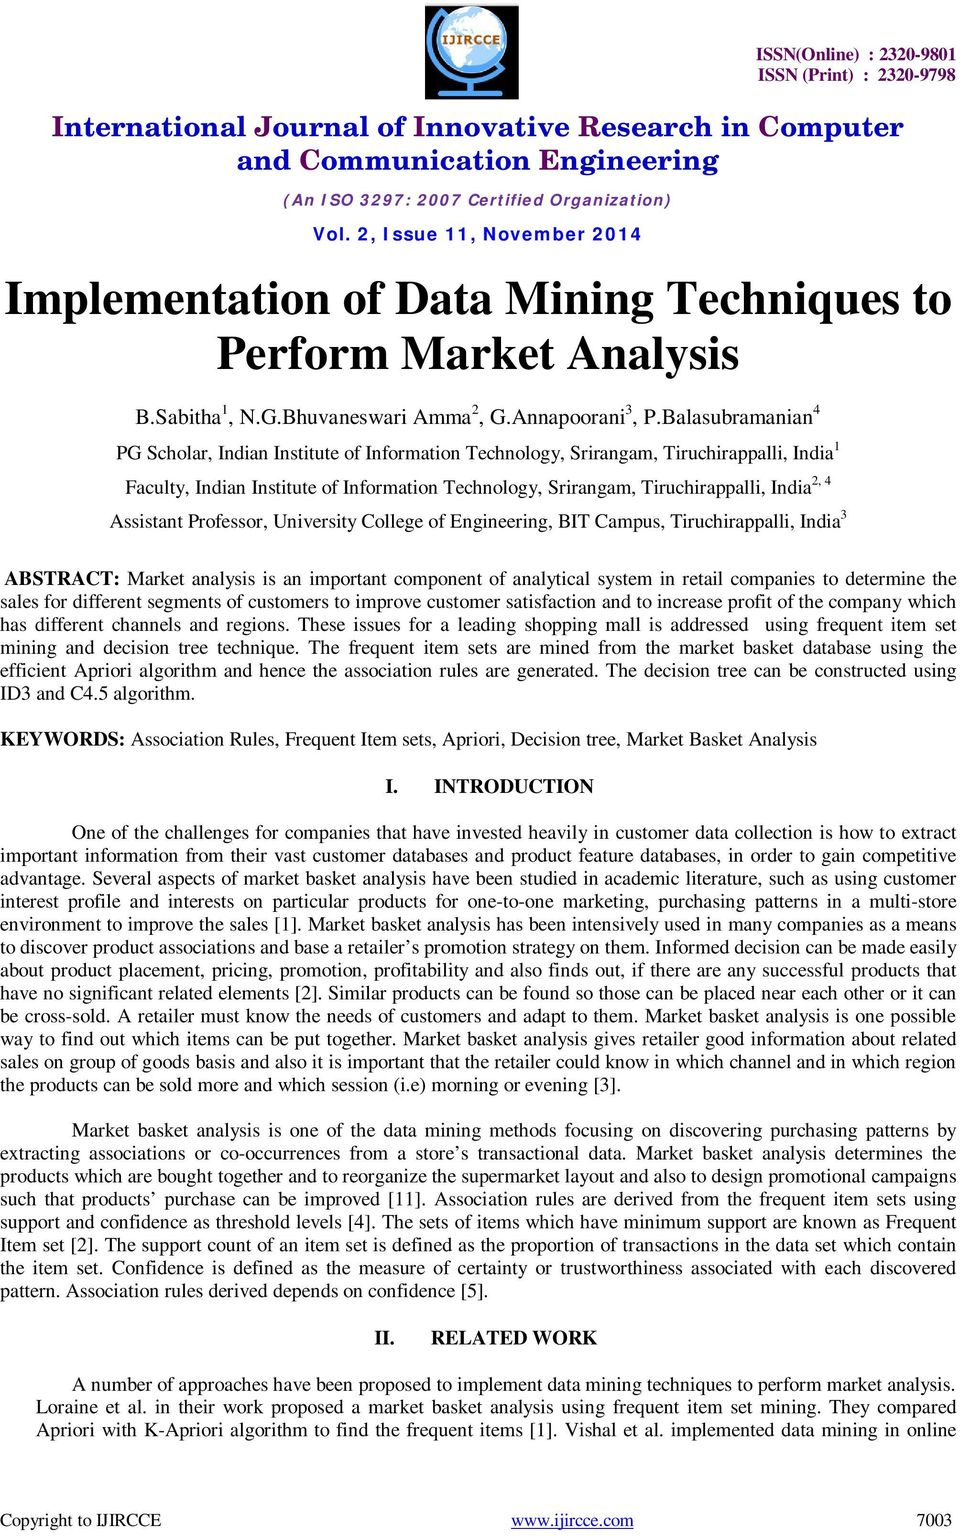 Implementation of Data Mining Techniques to Perform Market Analysis